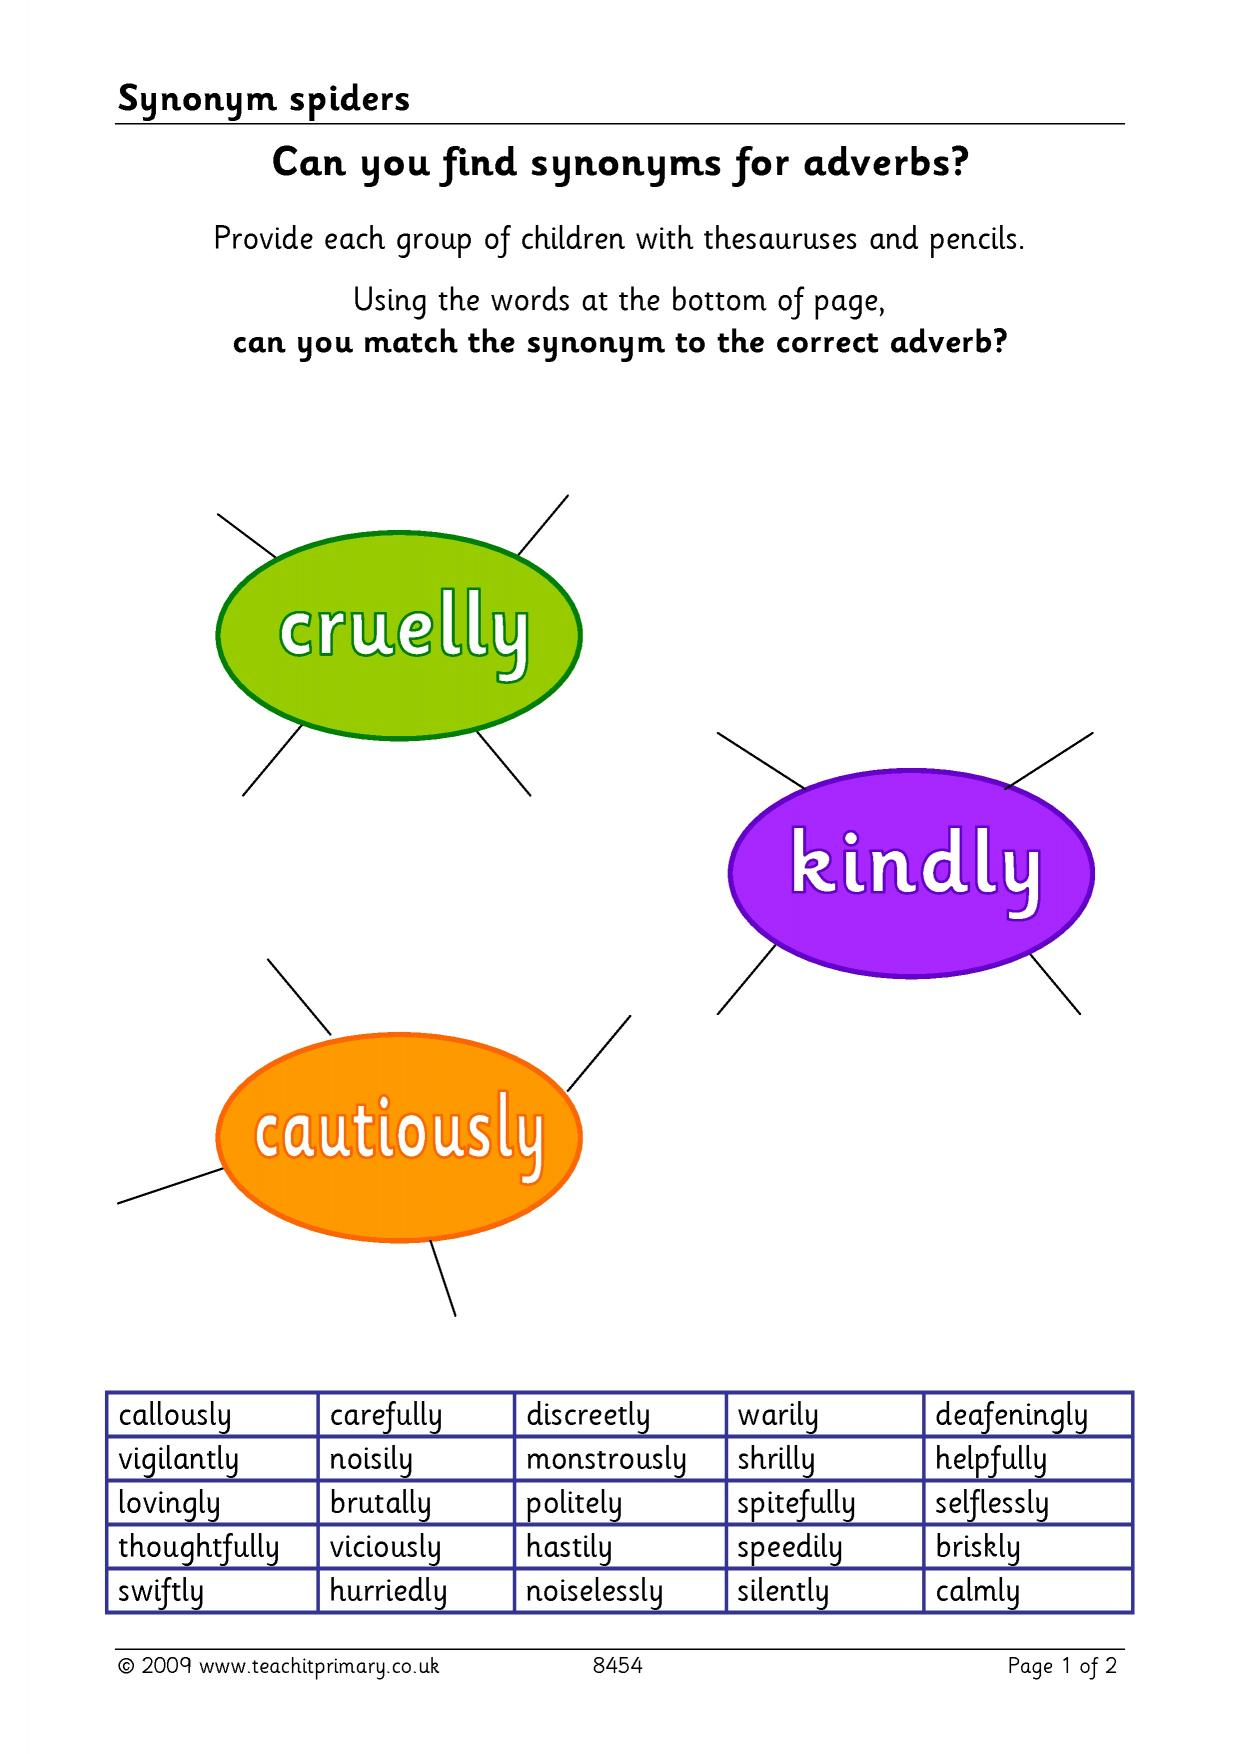 Synonym spiders word classes synonyms and antonyms home page resource thumbnail ccuart Choice Image